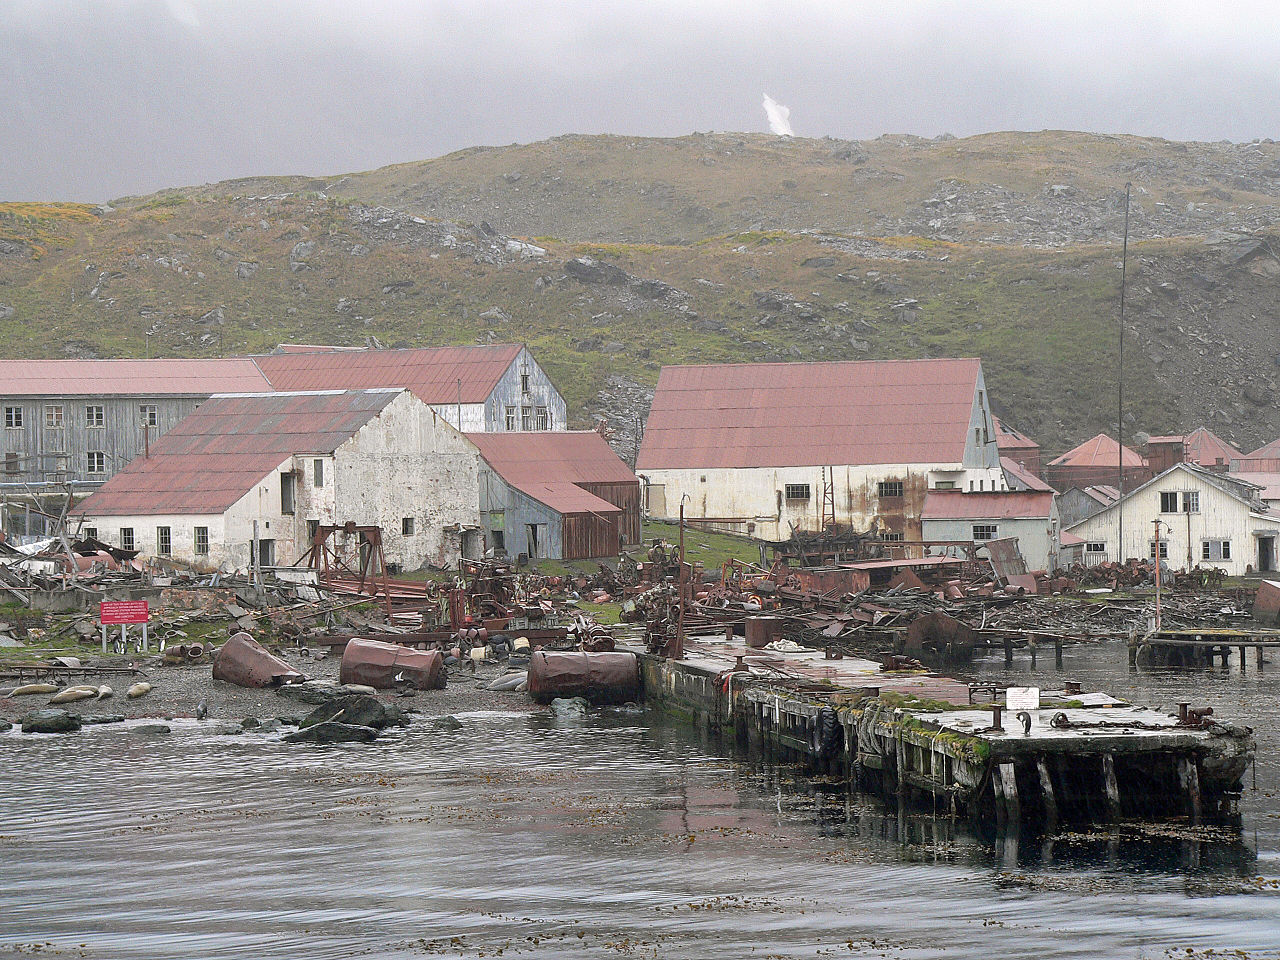 Stromness Whaling Station - Endurance Expedition